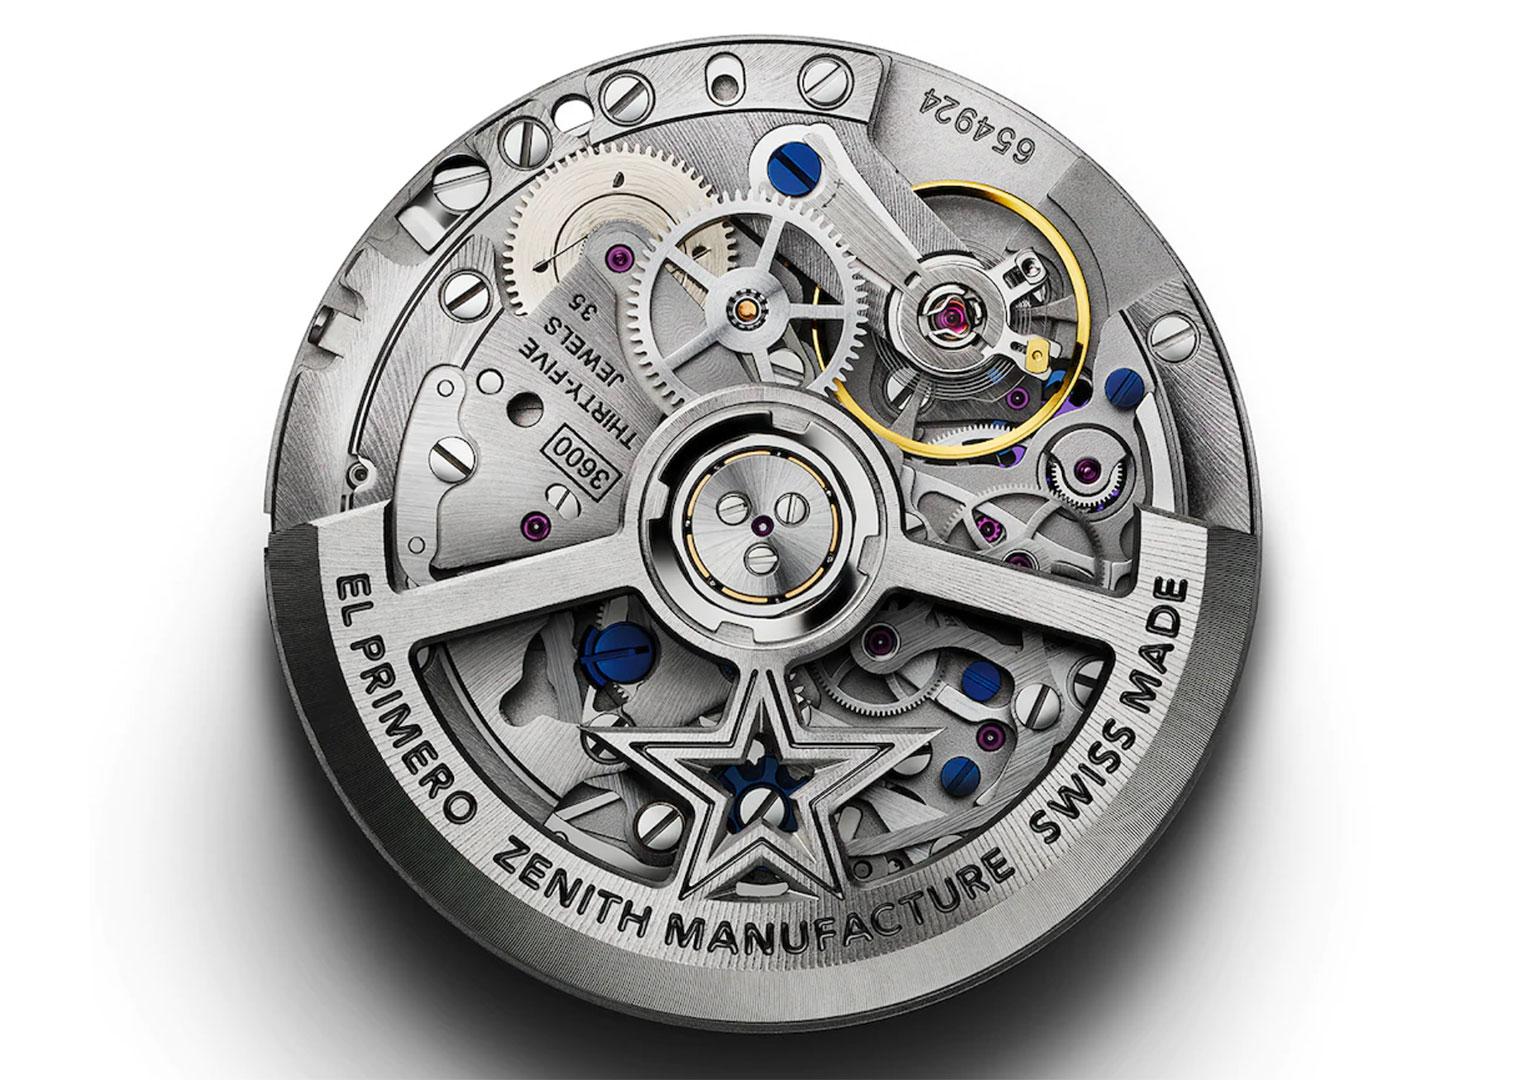 The Zenith El Primero was first introduced in 1969